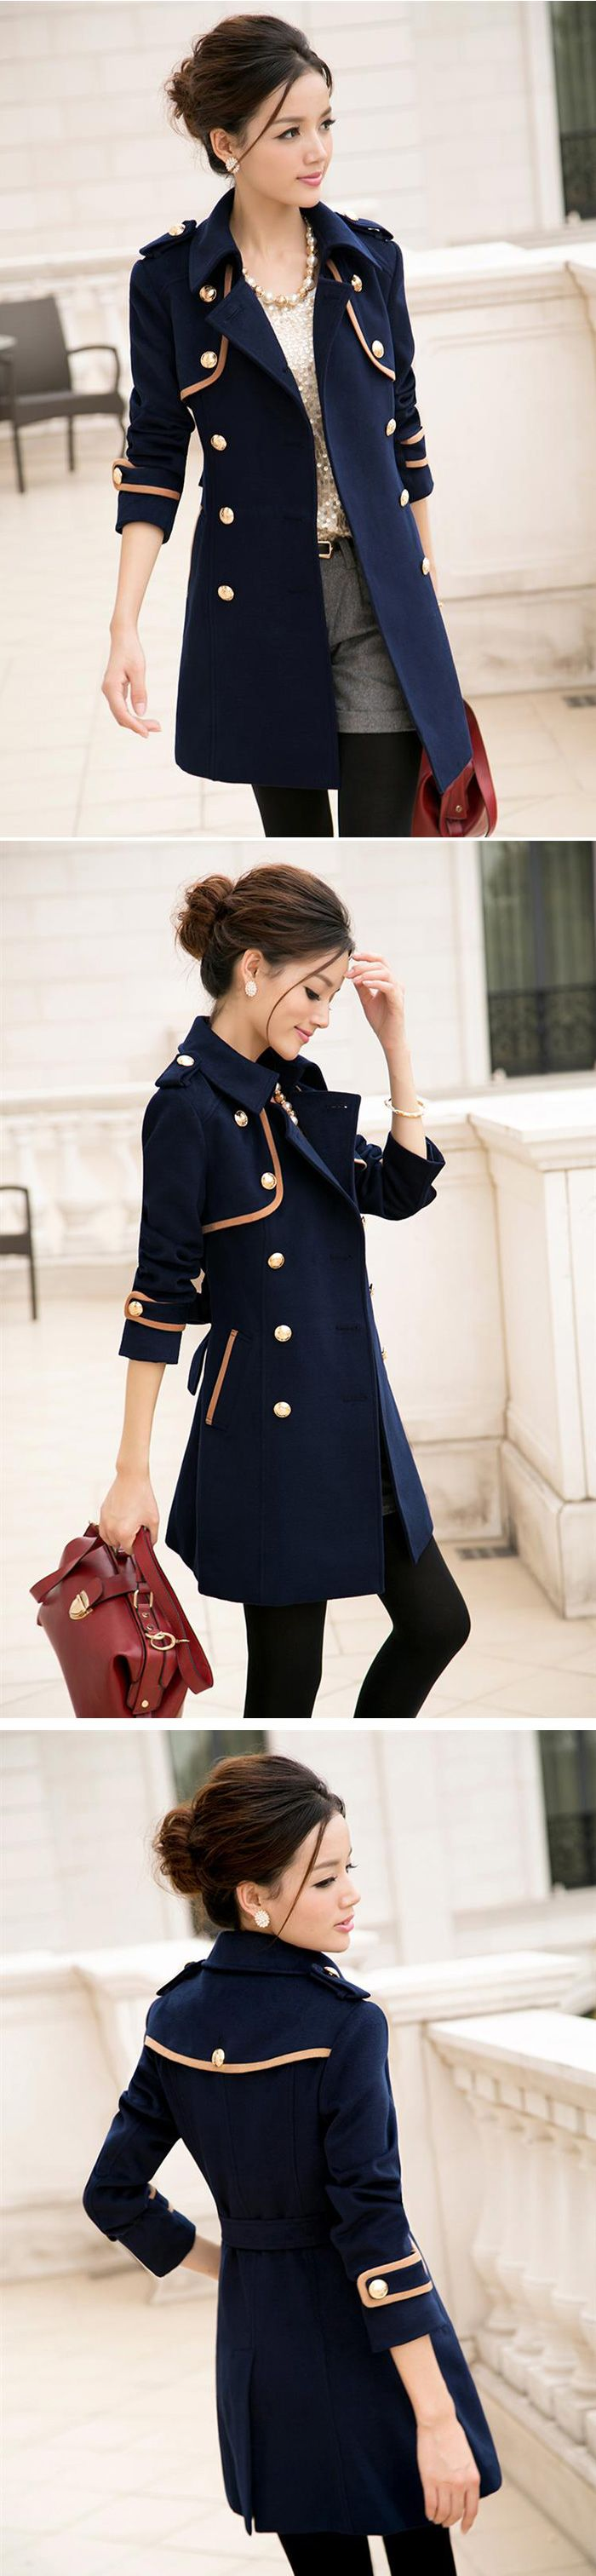 Elegant Style Color Block Trench Coat, Shop online for $52.50 Cheap Trench Coats code 712173 - Eastclothes.com